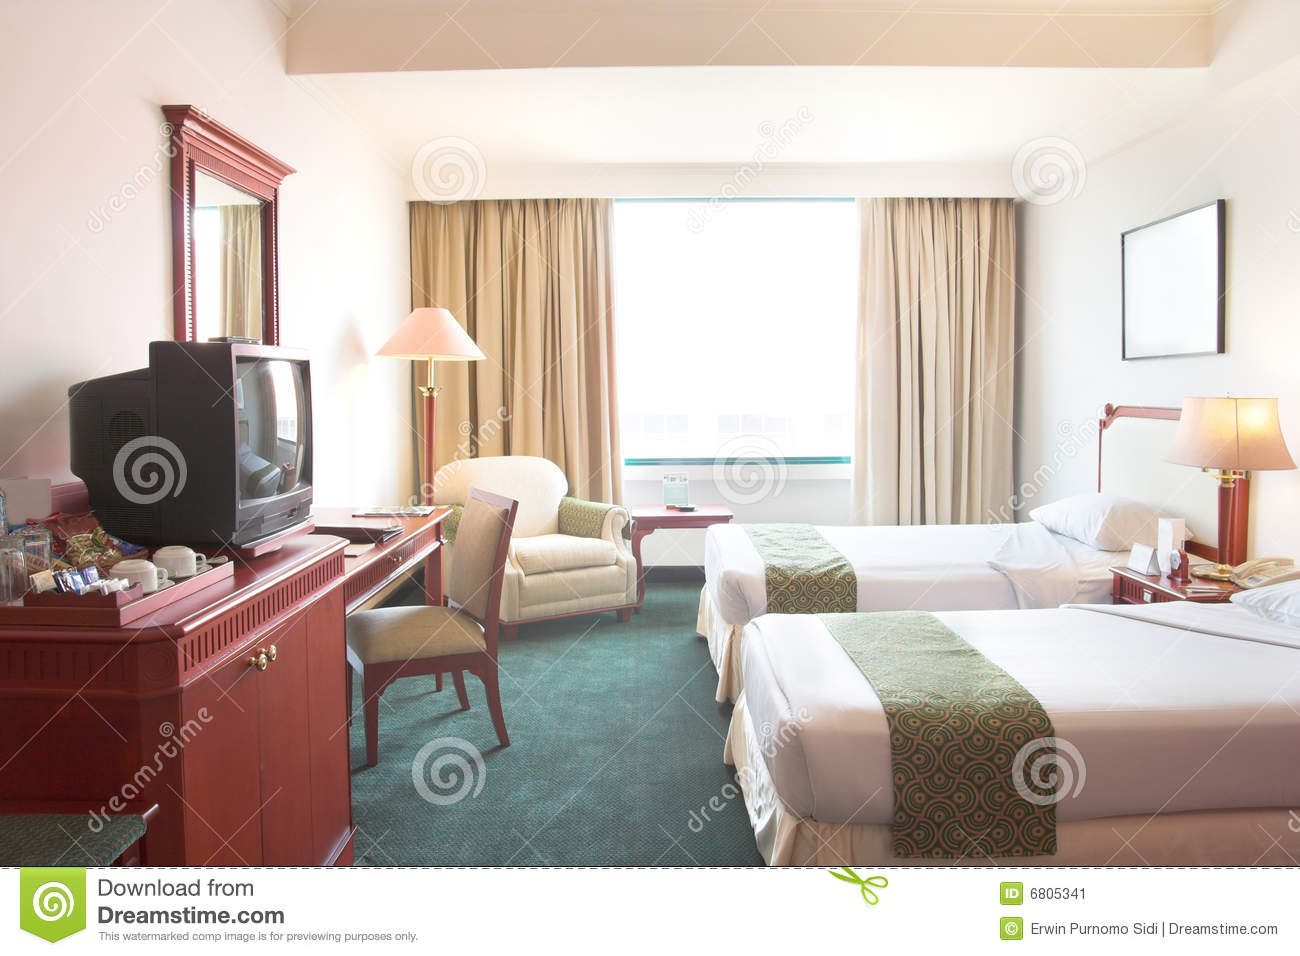 Crt tv in the hotel room stock image. Image of accommodation - 6805341